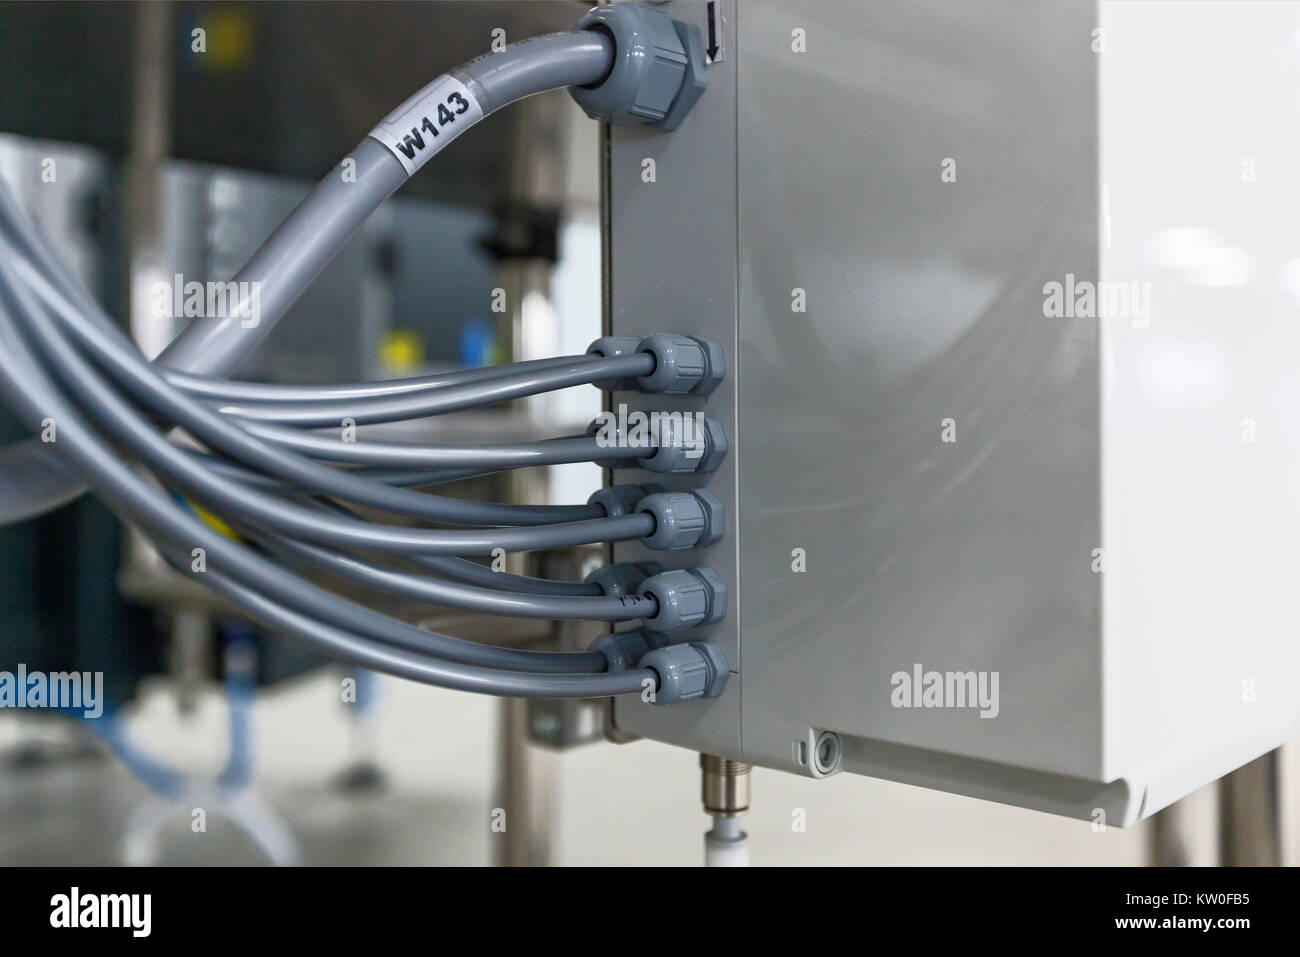 Electrical Junction Box Stock Photos Home Wiring With Cable Grand Connection Image